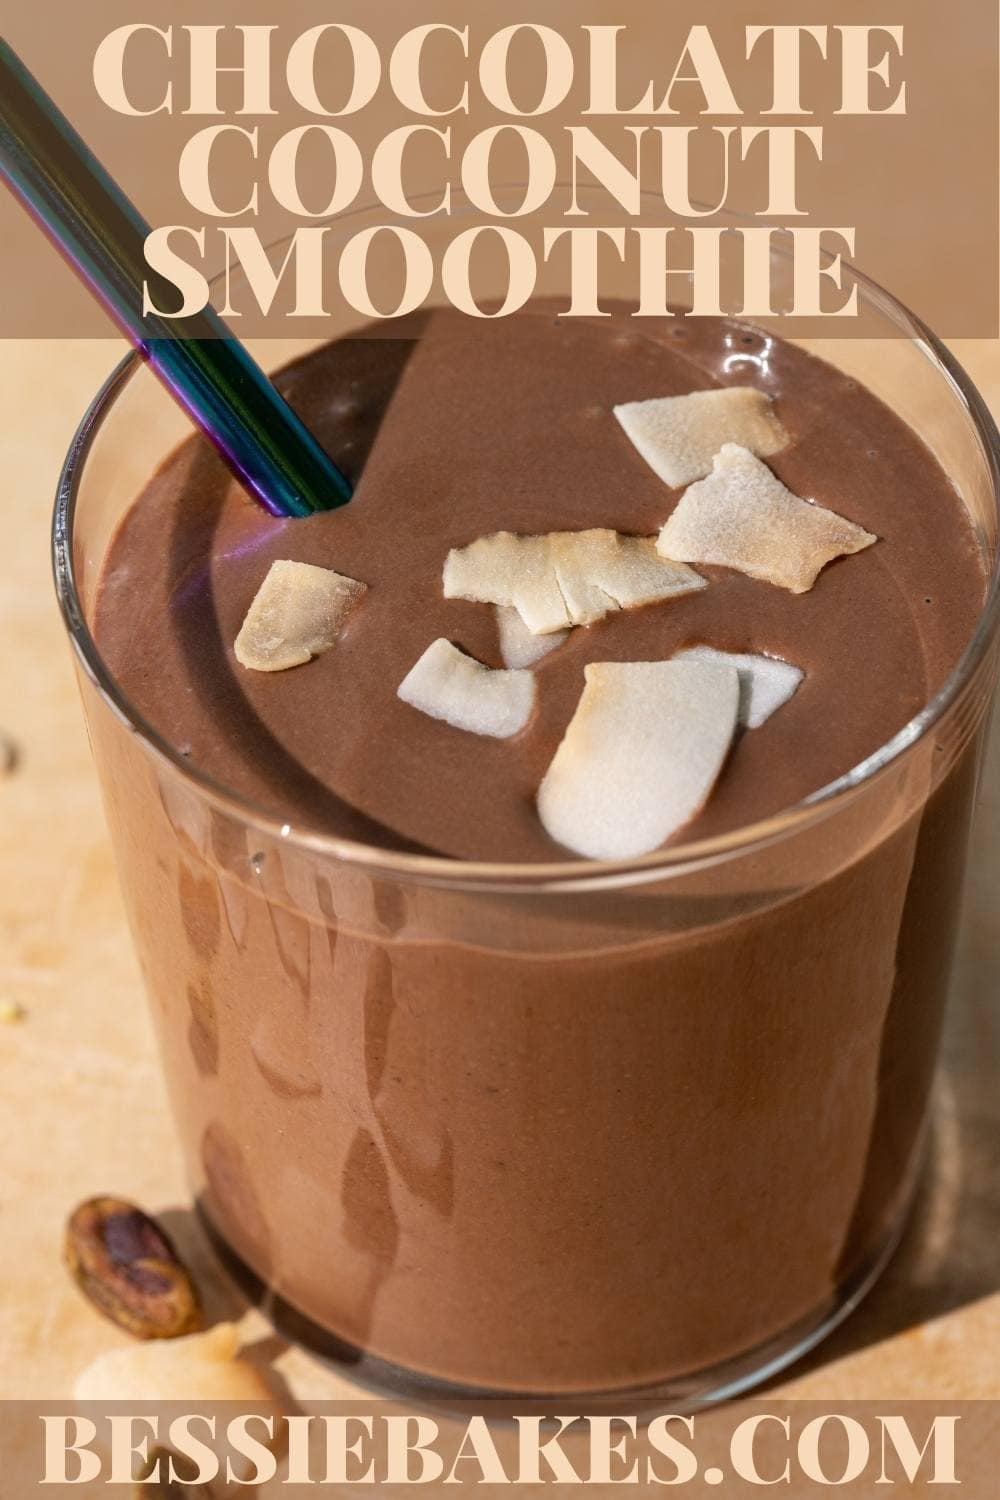 This smoothie is perfect to the last sip! While being high in good fats, it's also low in sugar and still so rich and delicious that you'll be craving more. via @bessiebakes